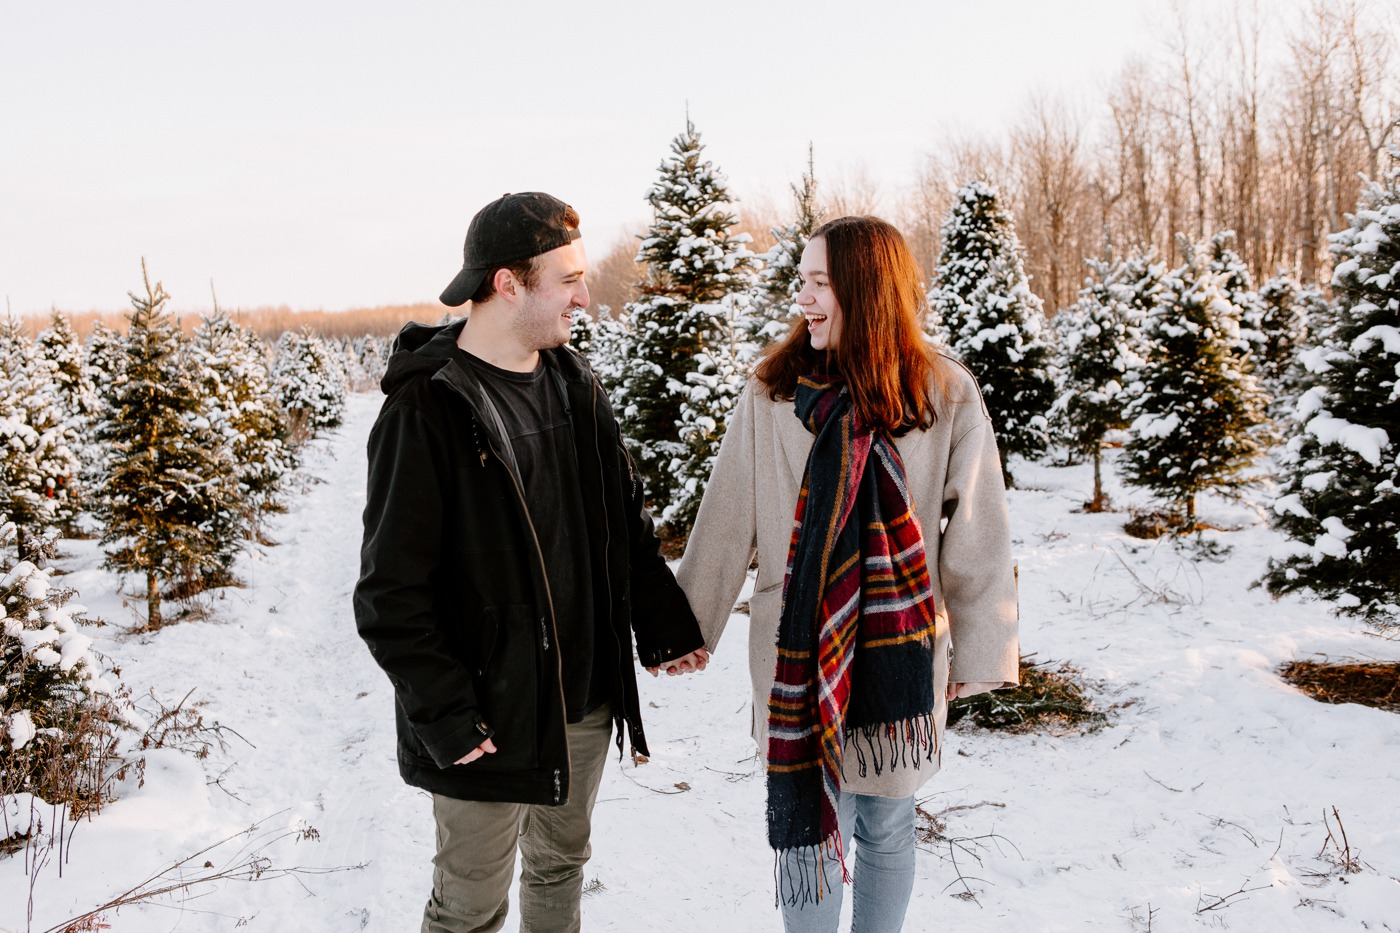 Photographe de fiançailles à Montréal. Photographe de couple à Montréal. Montreal engagement photographer. Montreal couple photographer. Romantic winter session in Montreal. Plantation JLS ferme de sapins de Noël